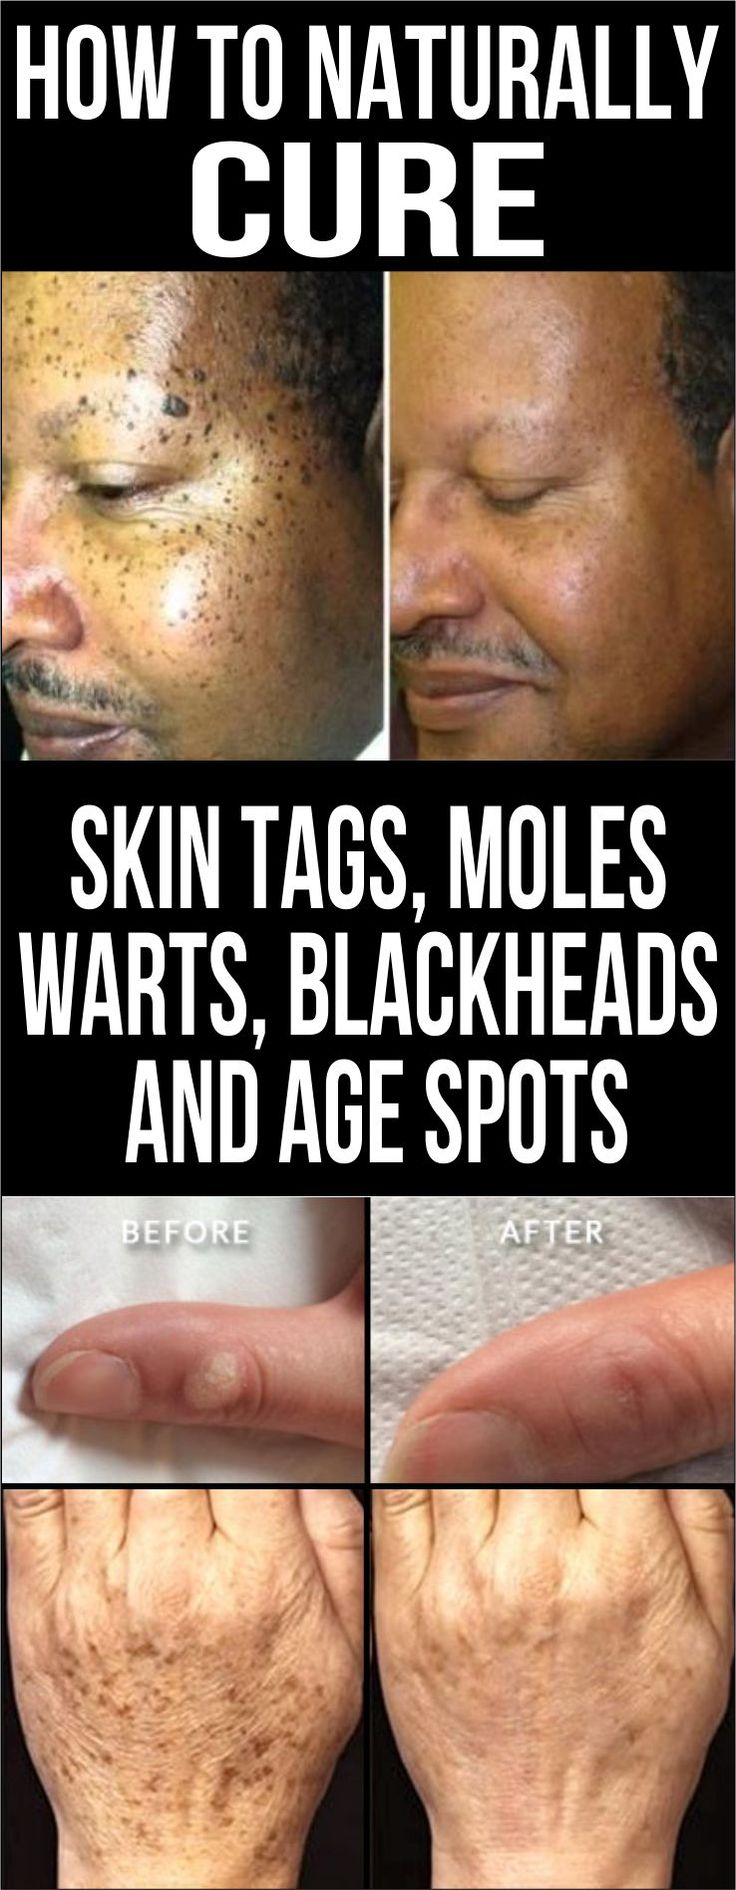 It is important to pay attention to your skin and look for